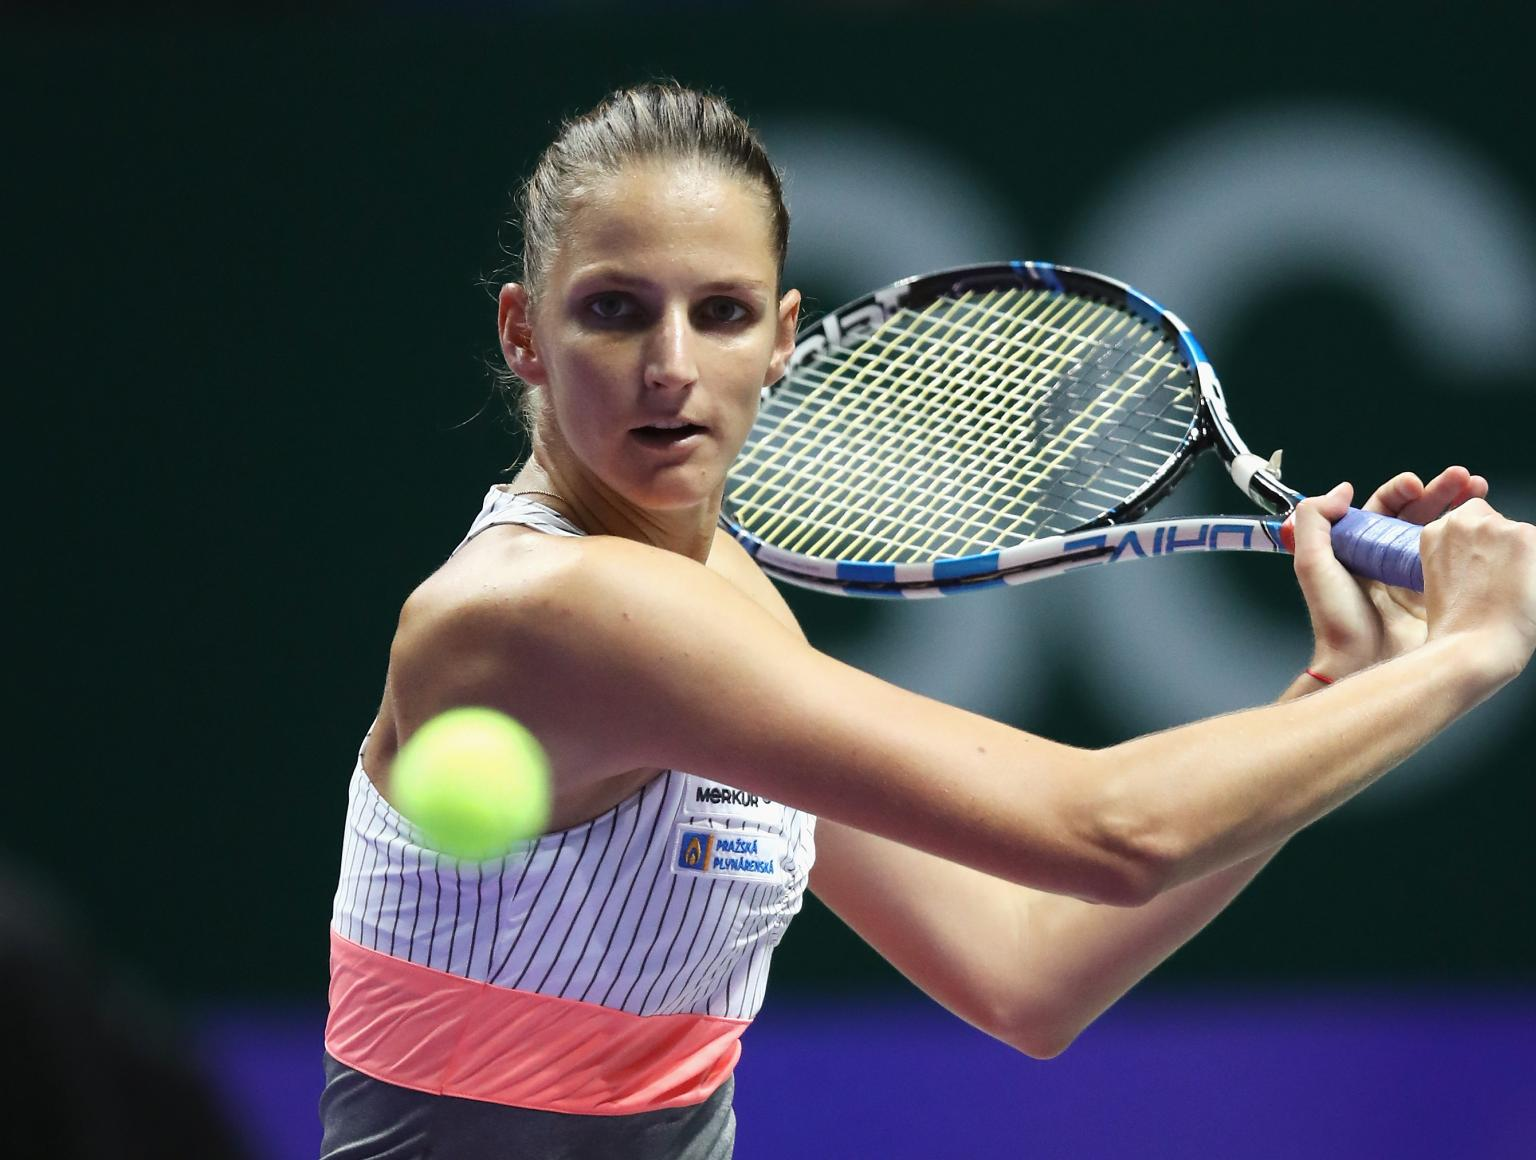 Lizette Cabrera vs Dalila Jakupovic Tennis Predictions & Picks